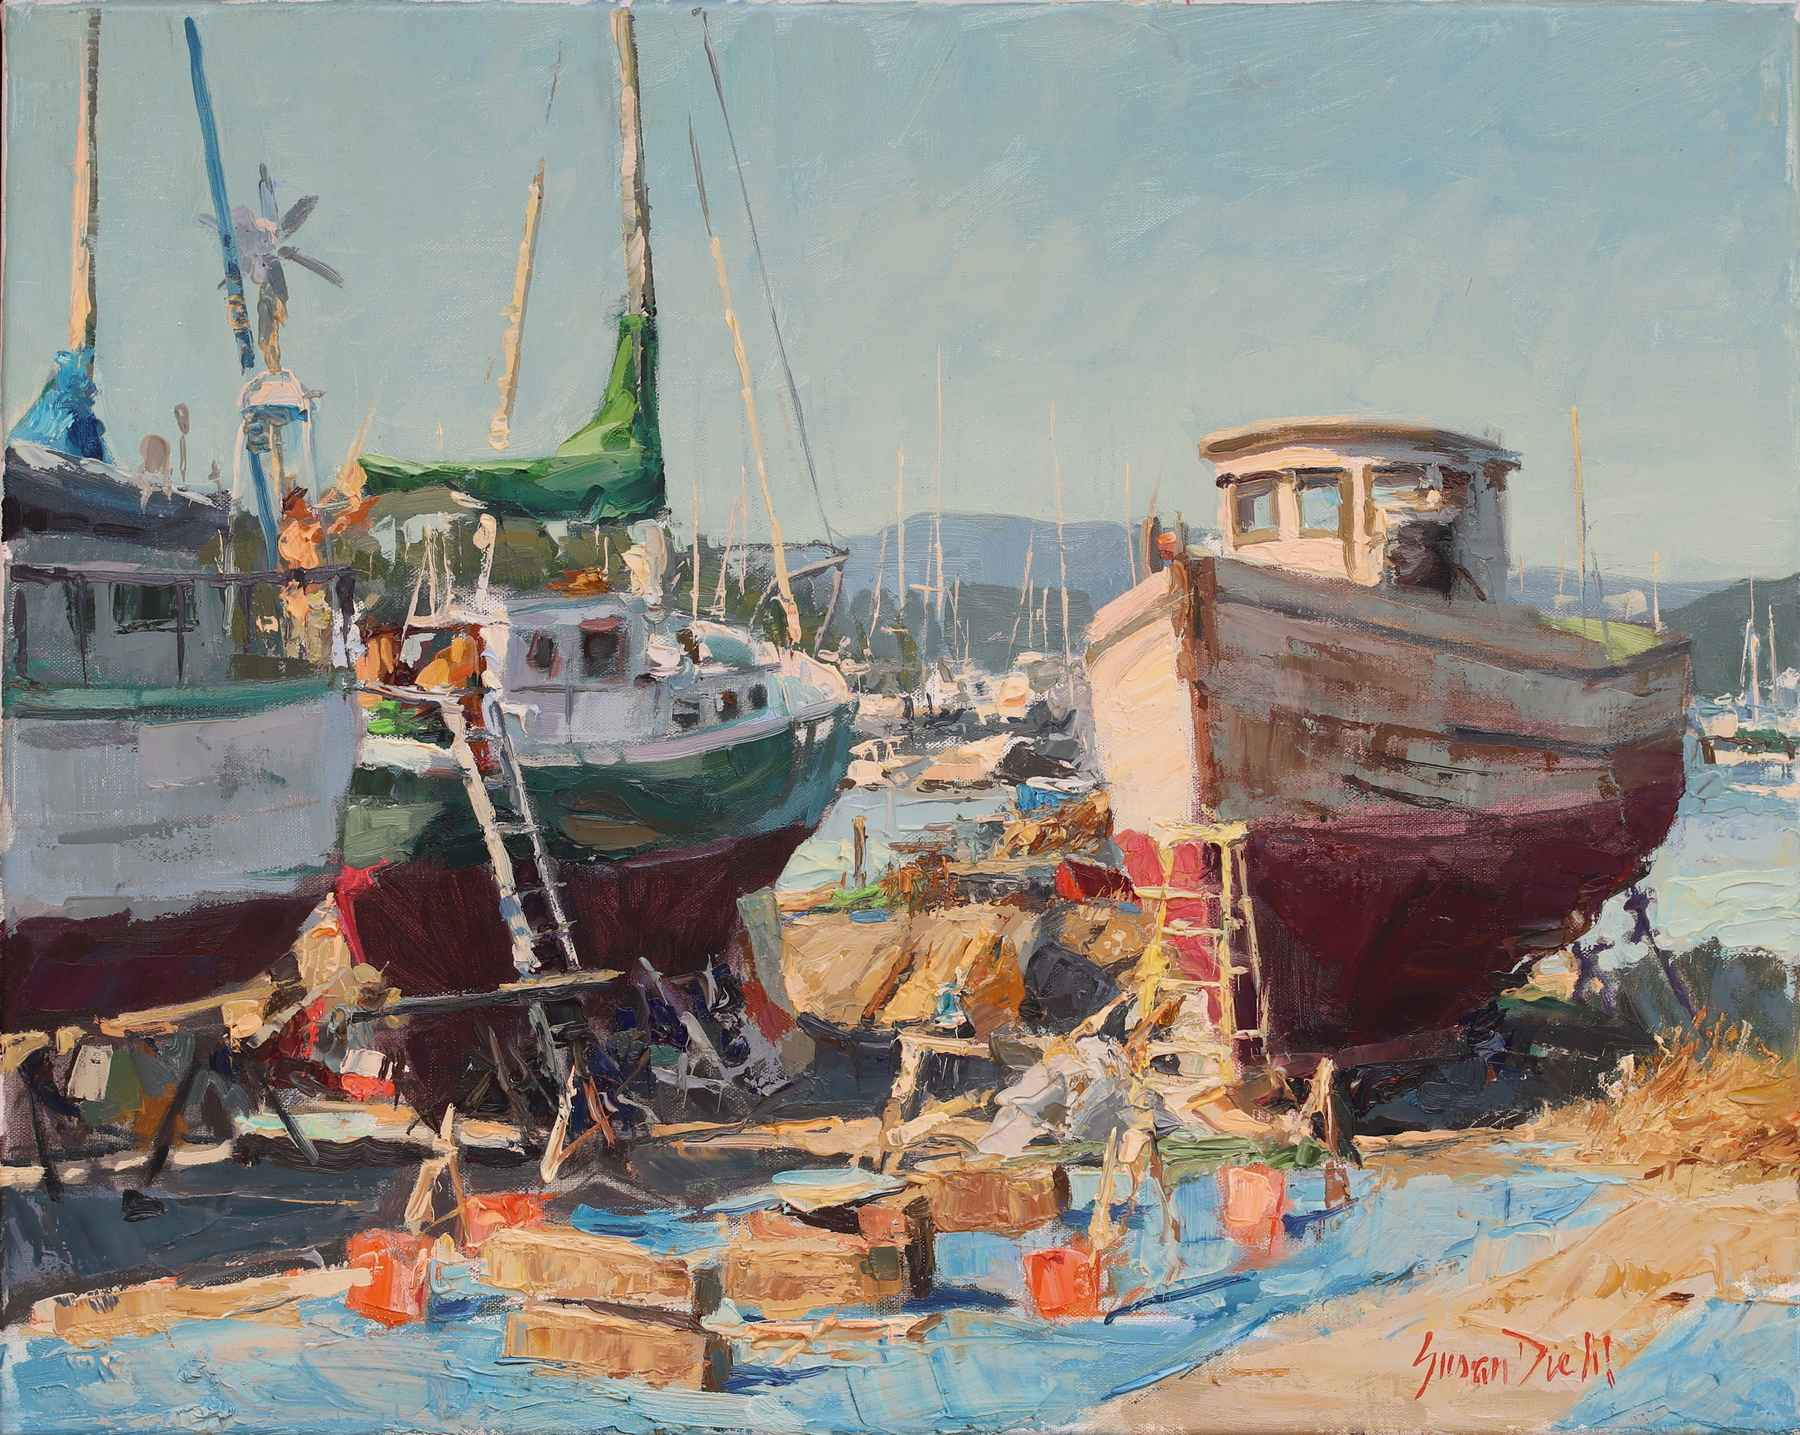 From Bow to Stern by  Susan Diehl - Masterpiece Online